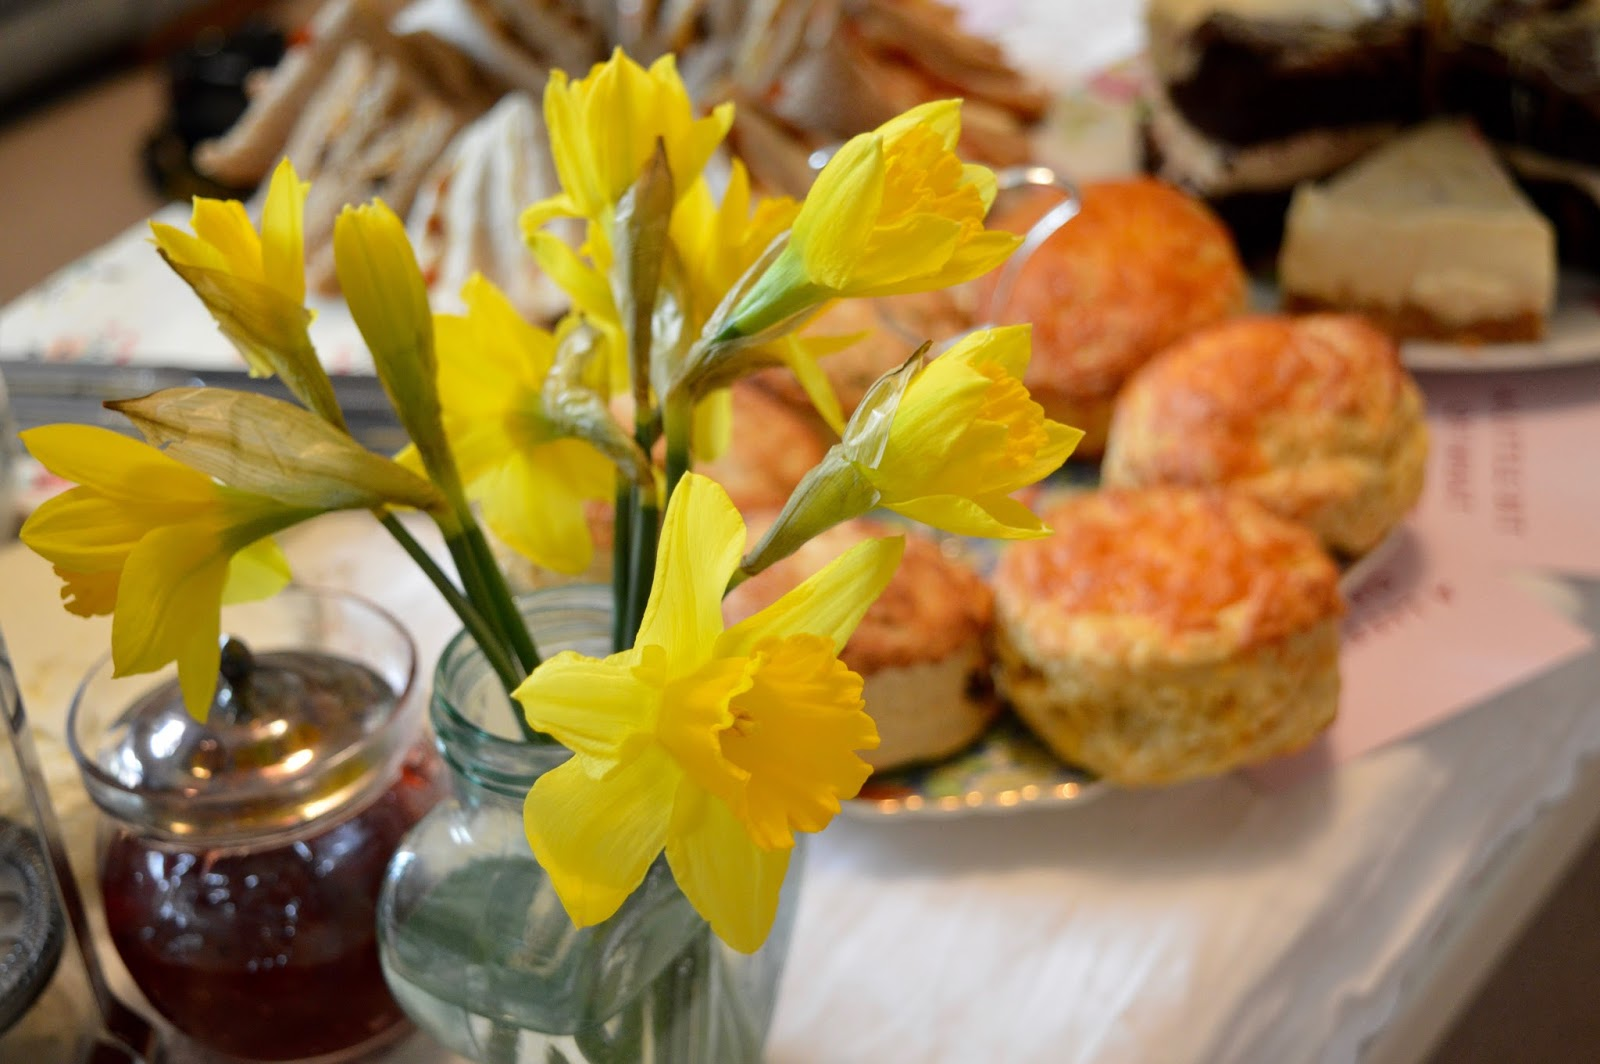 Afternoon Tea delivered in Newcastle with Mrs Dellows Delights - homemade scones